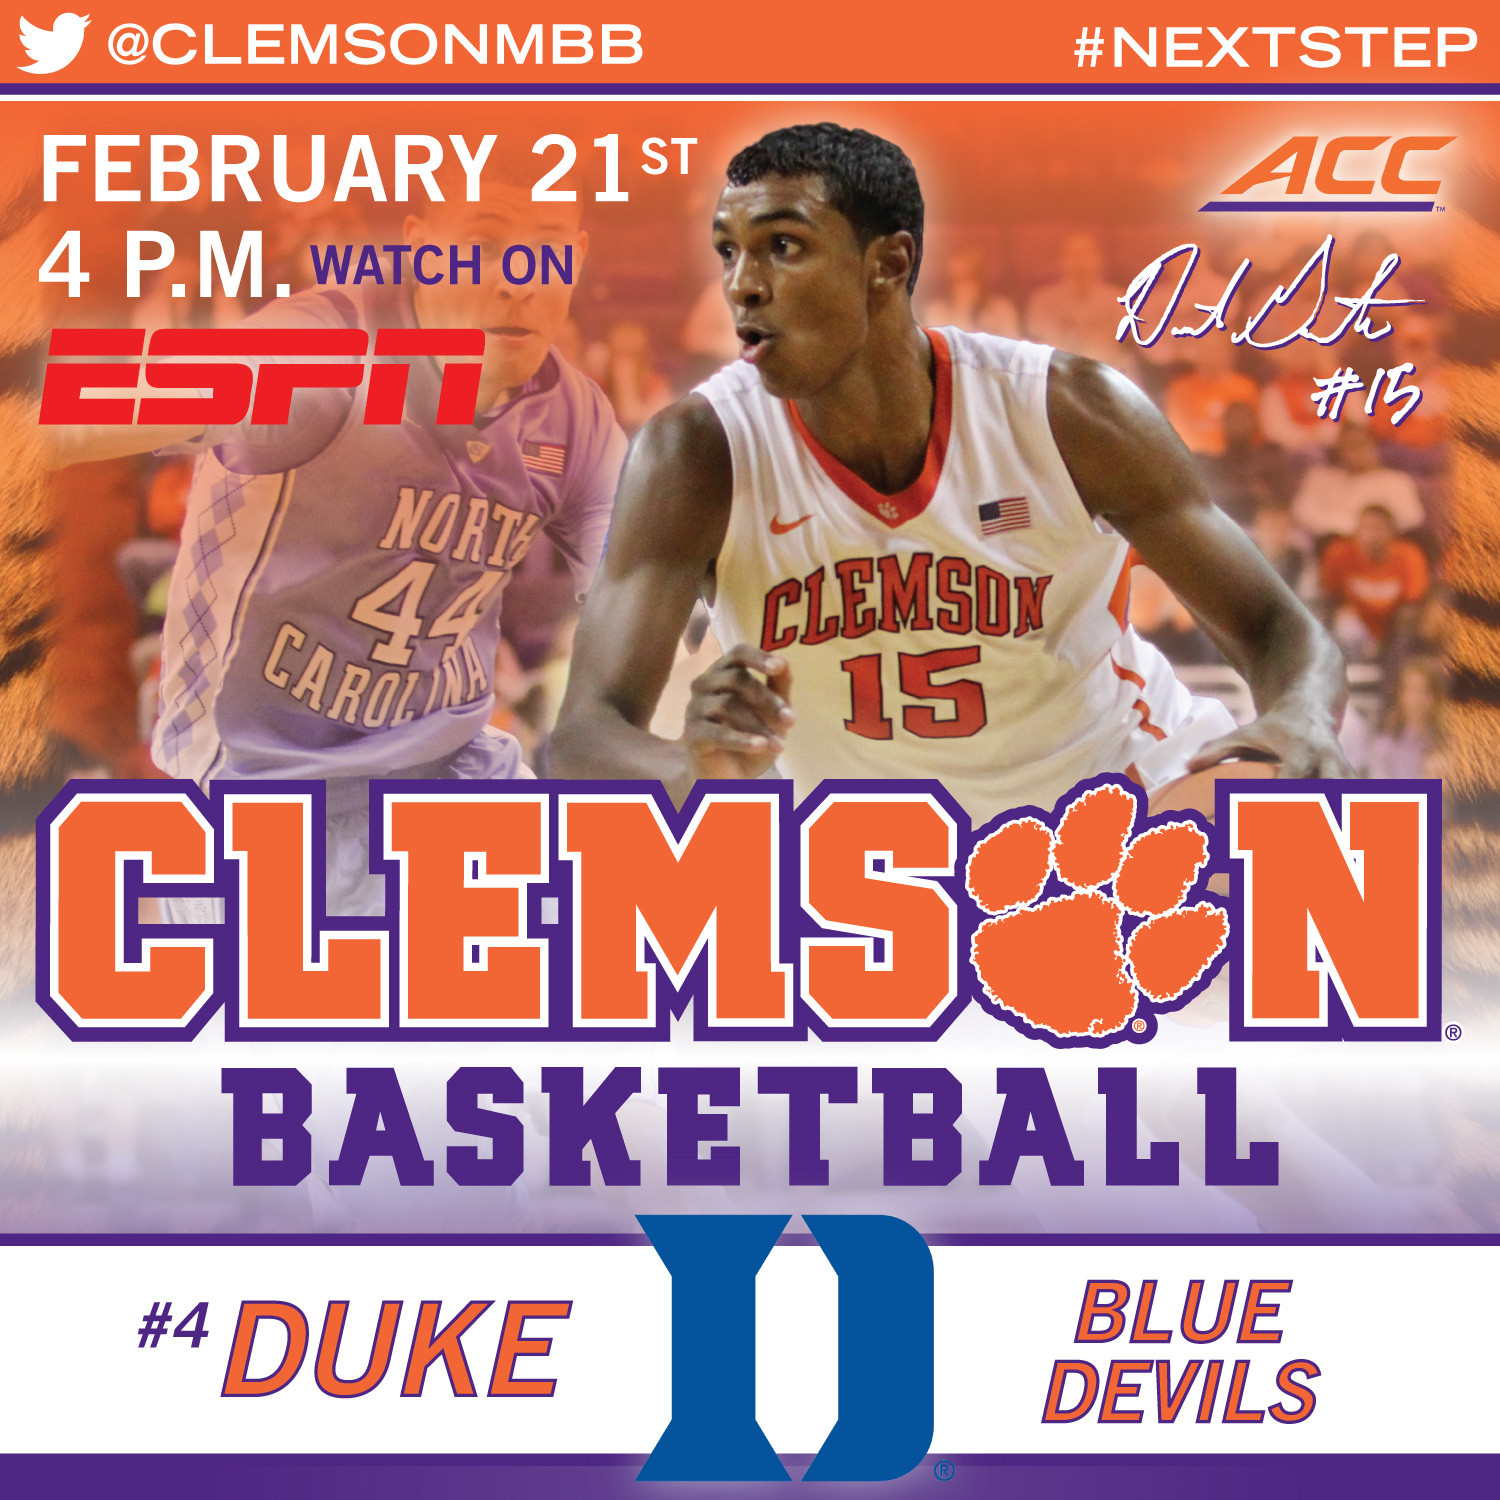 Tigers Travel to Durham to Face No. 4 Duke